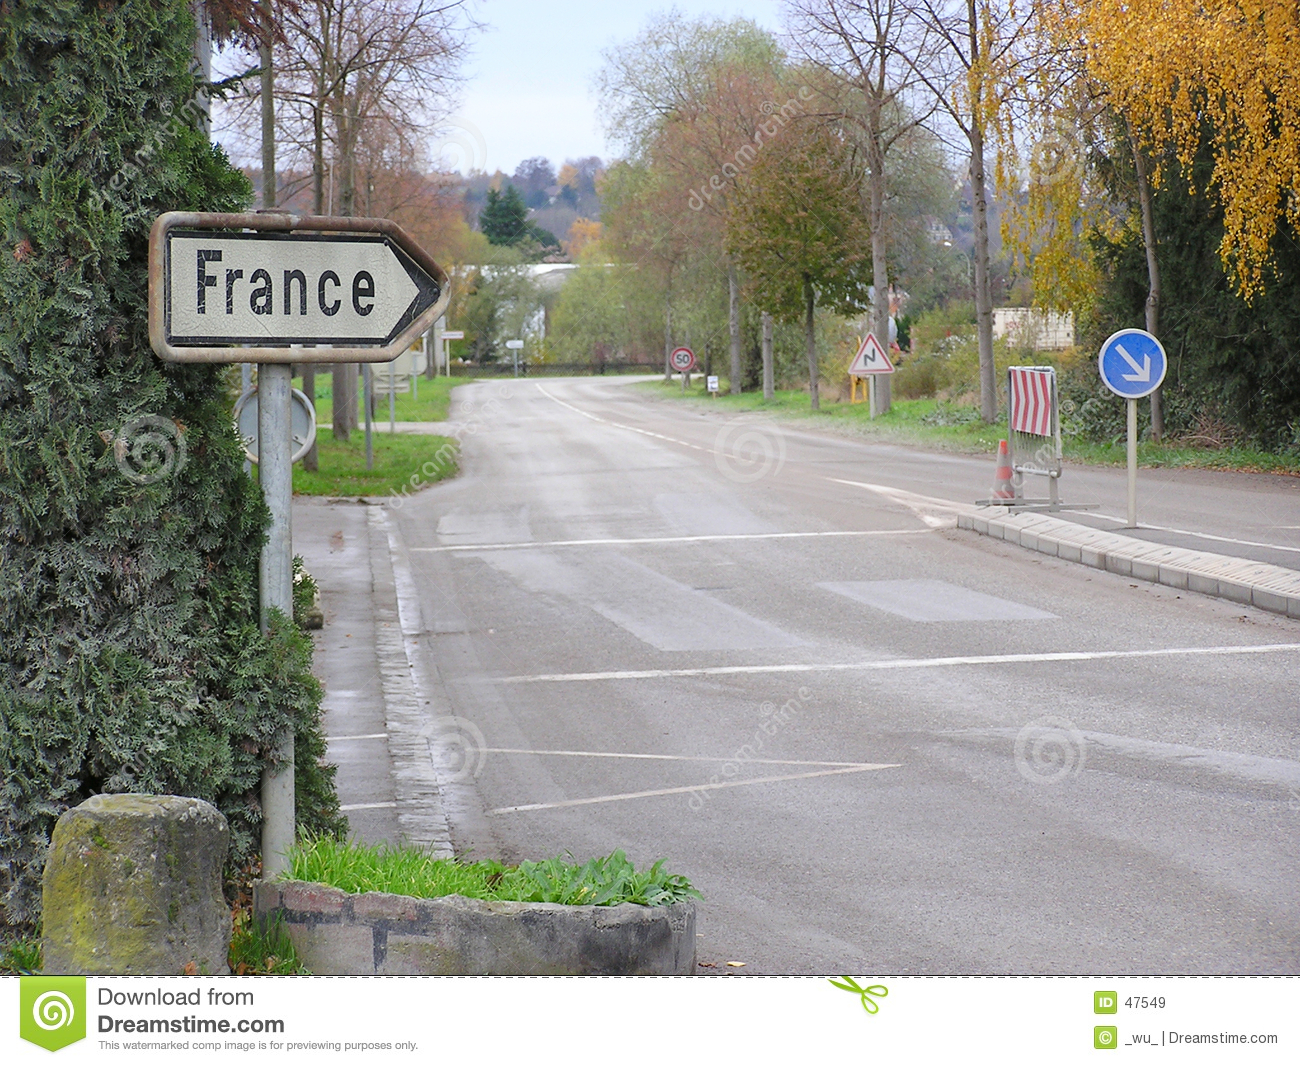 Download Way to France stock image. Image of france, sign, road, show - 47549